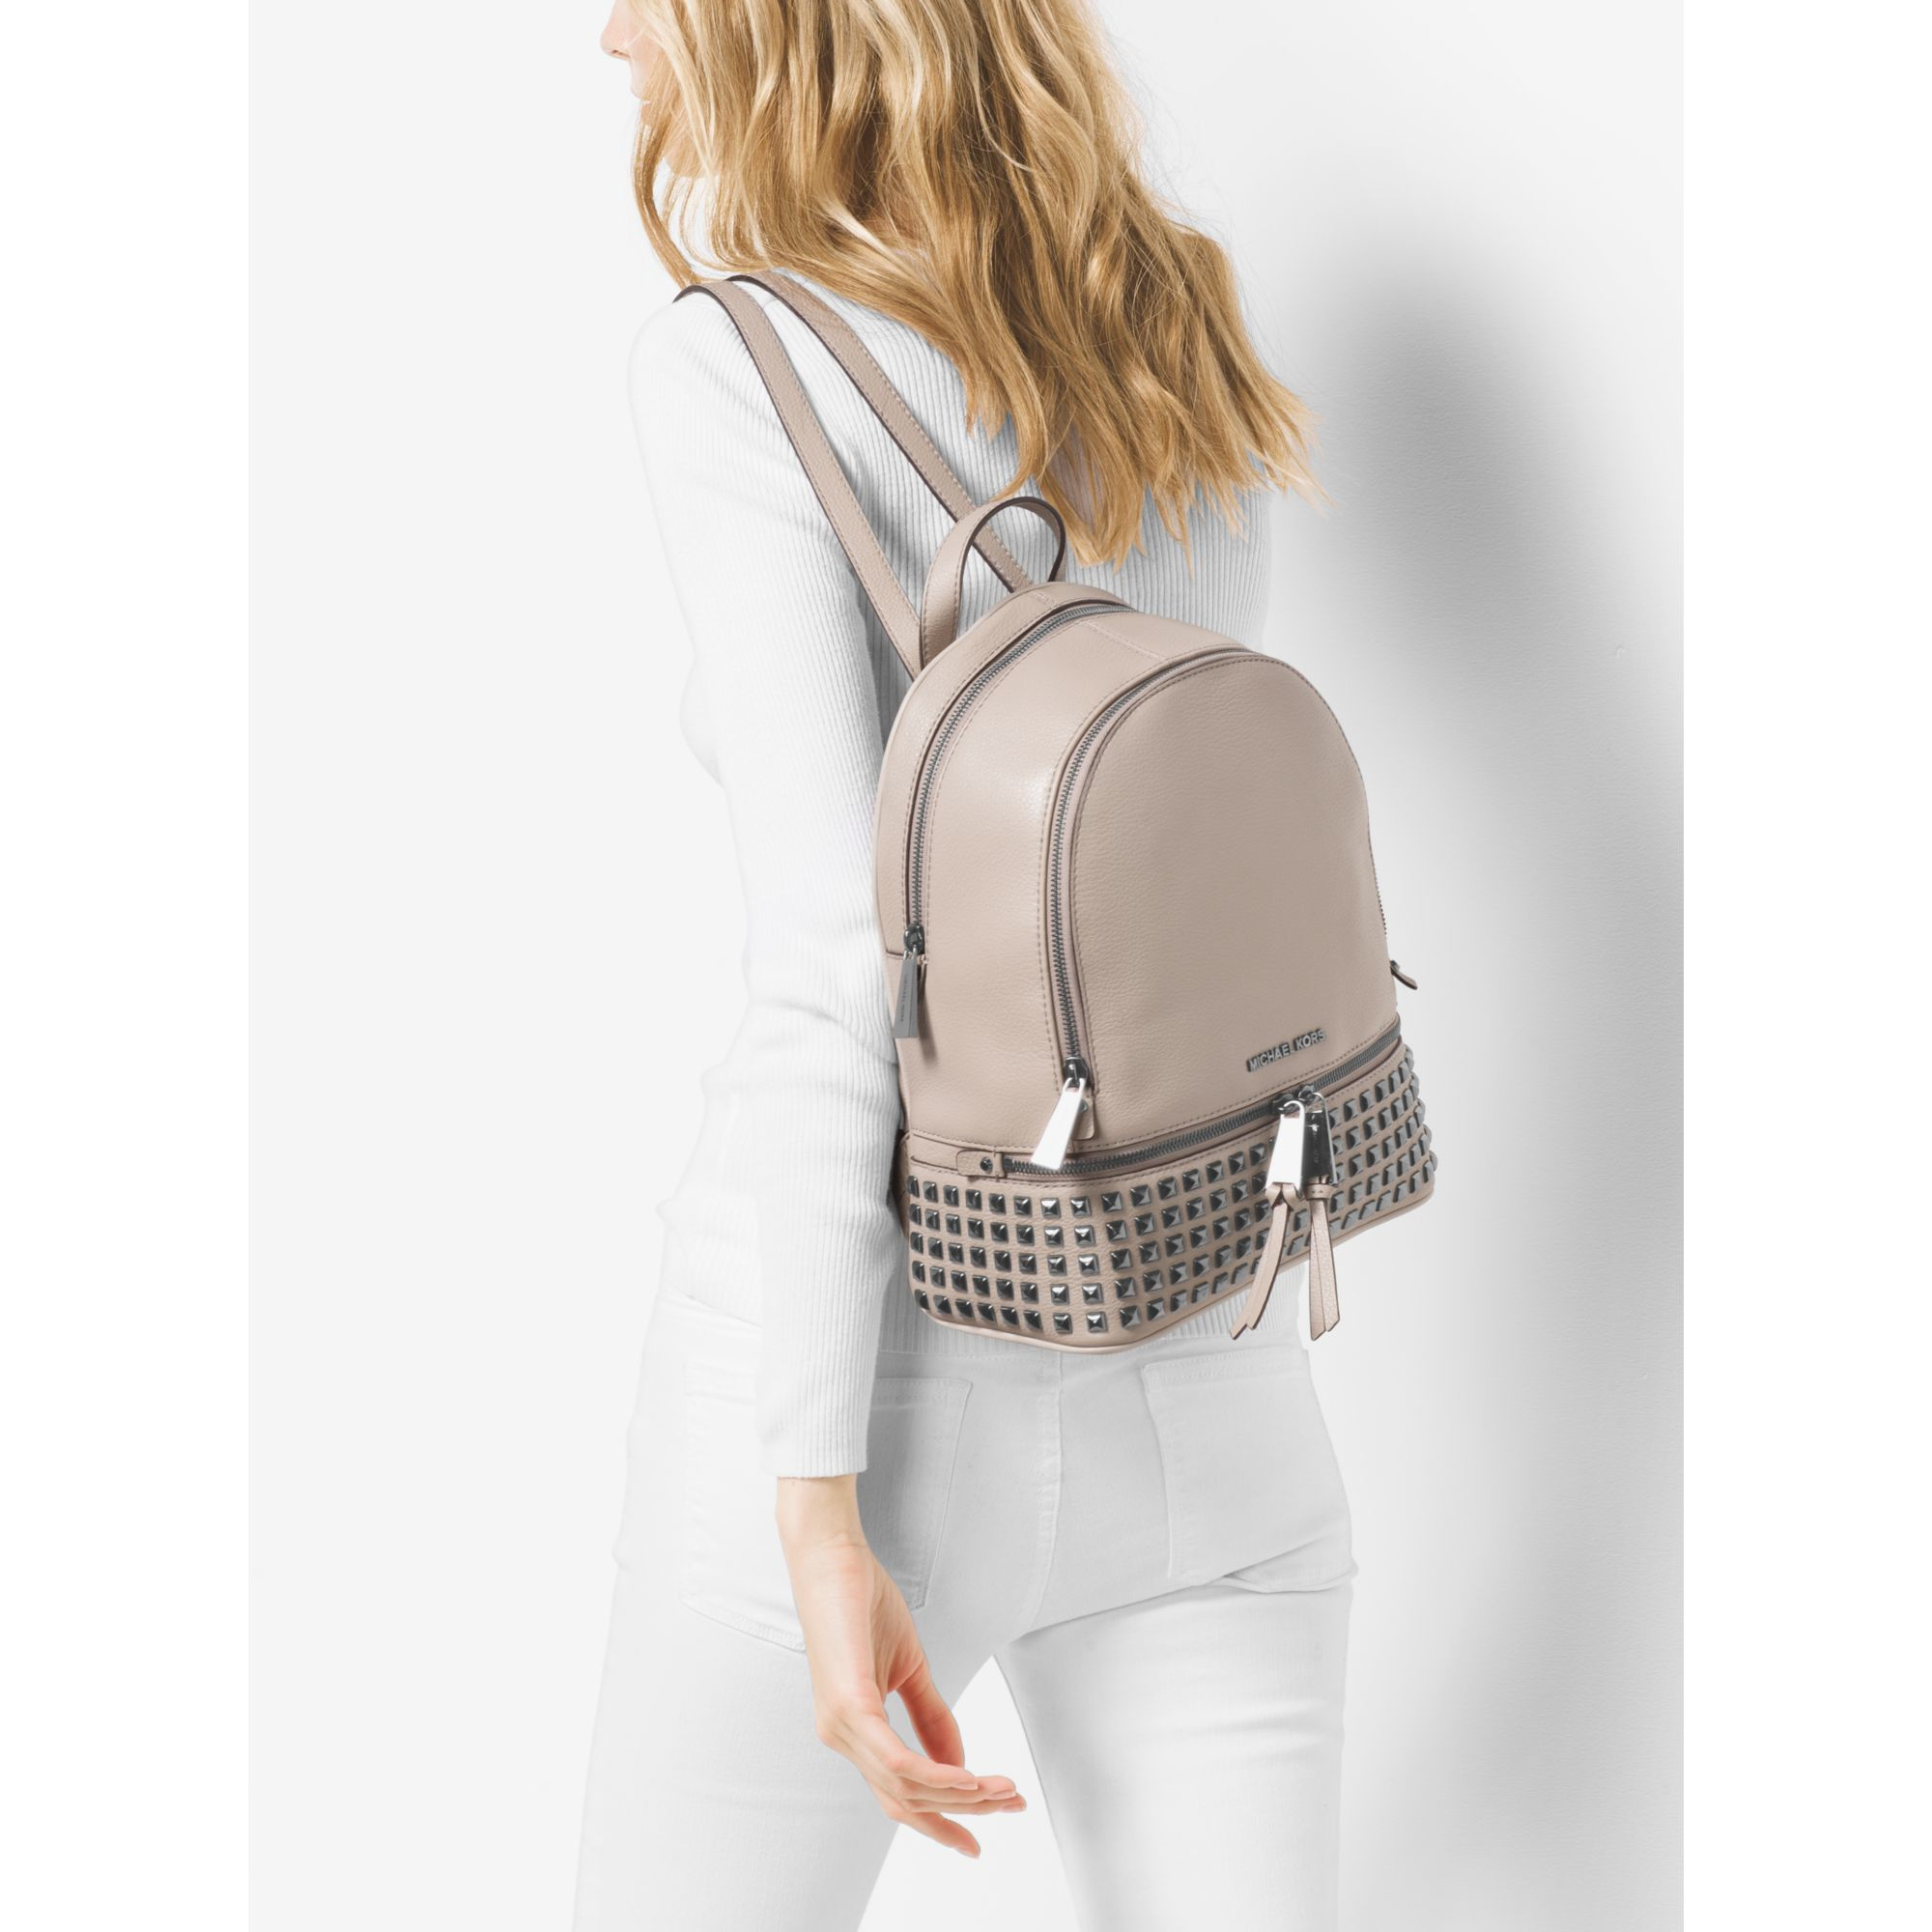 4267bc06cc50 ... new zealand official lyst michael kors rhea medium leather studded  backpack in gray 41b98 04844 4048b